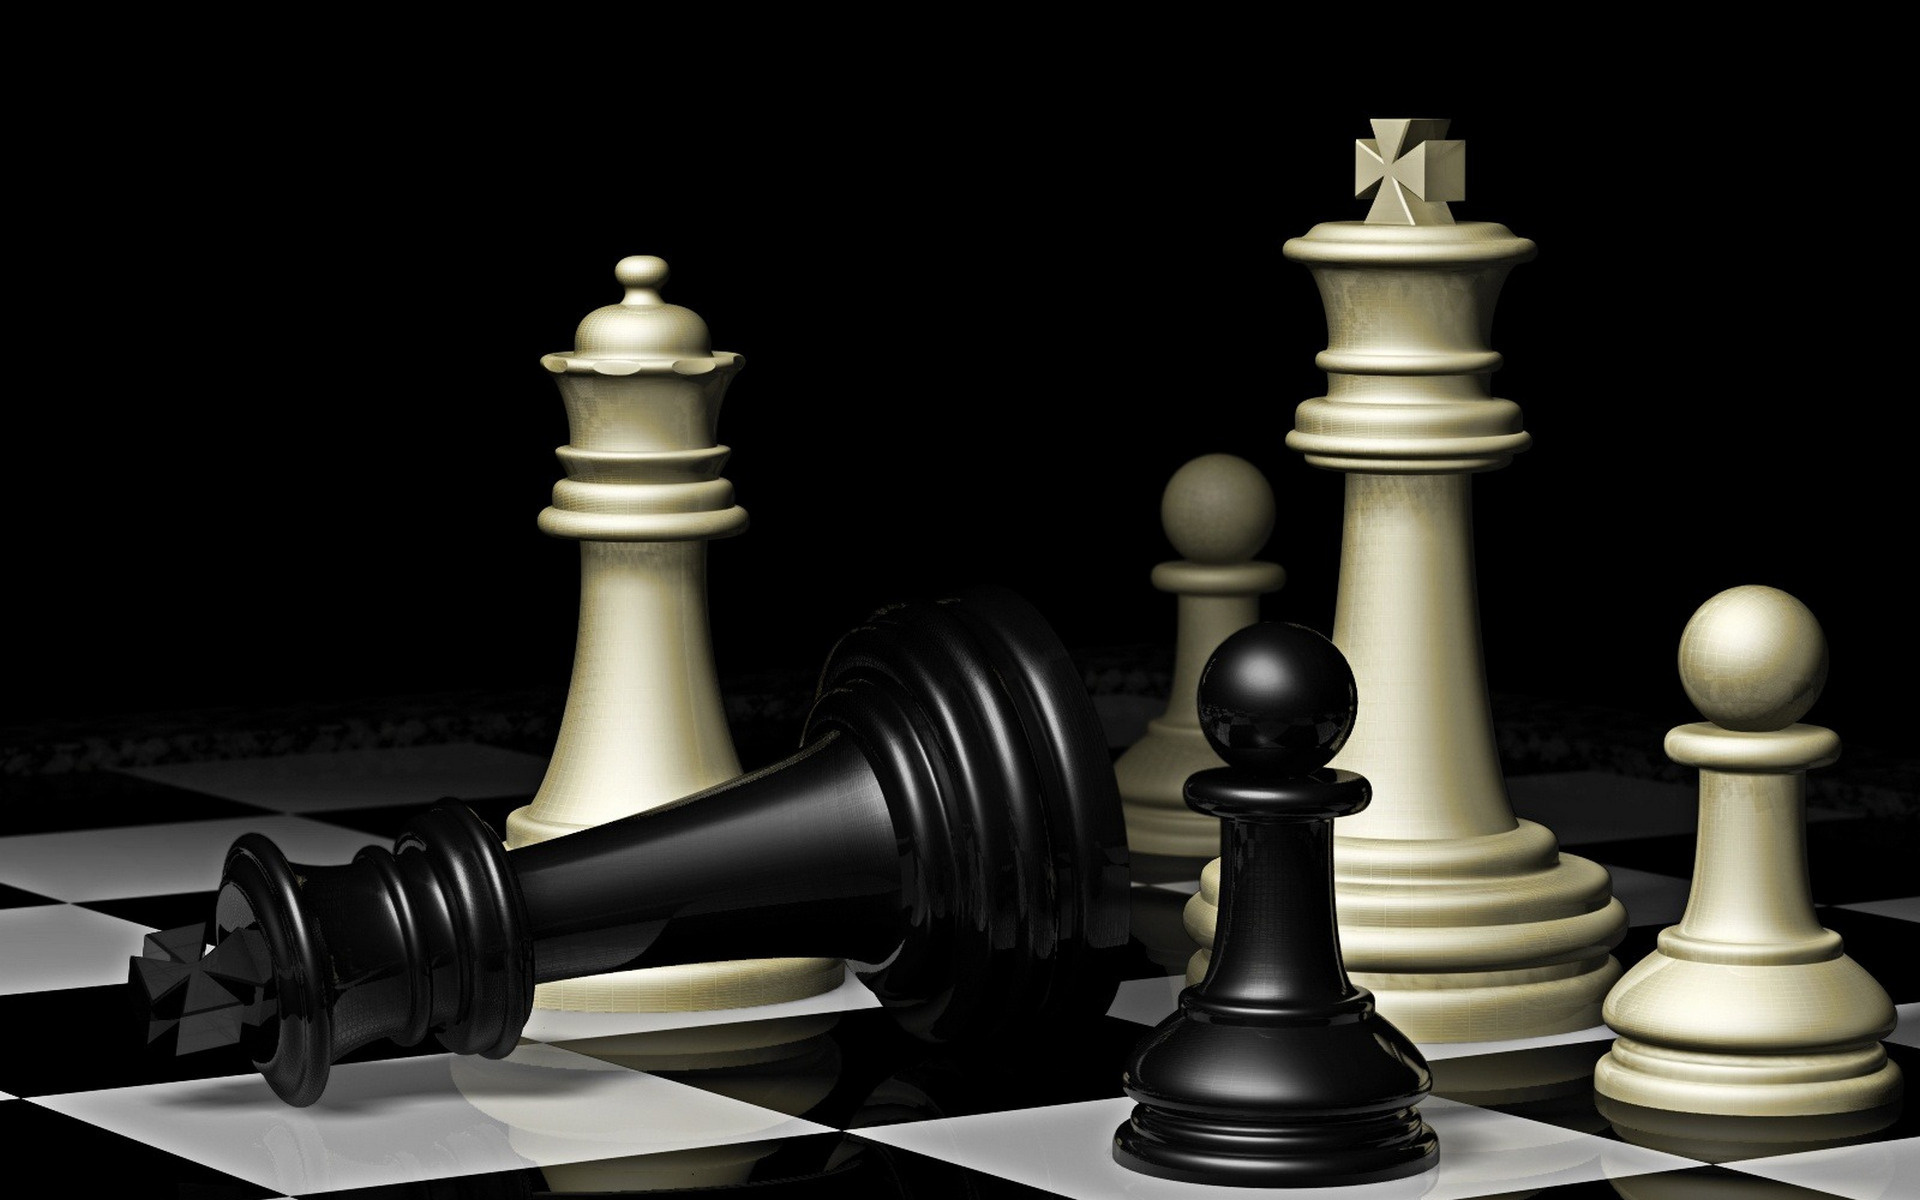 3d chess desktop wallpaper 49448